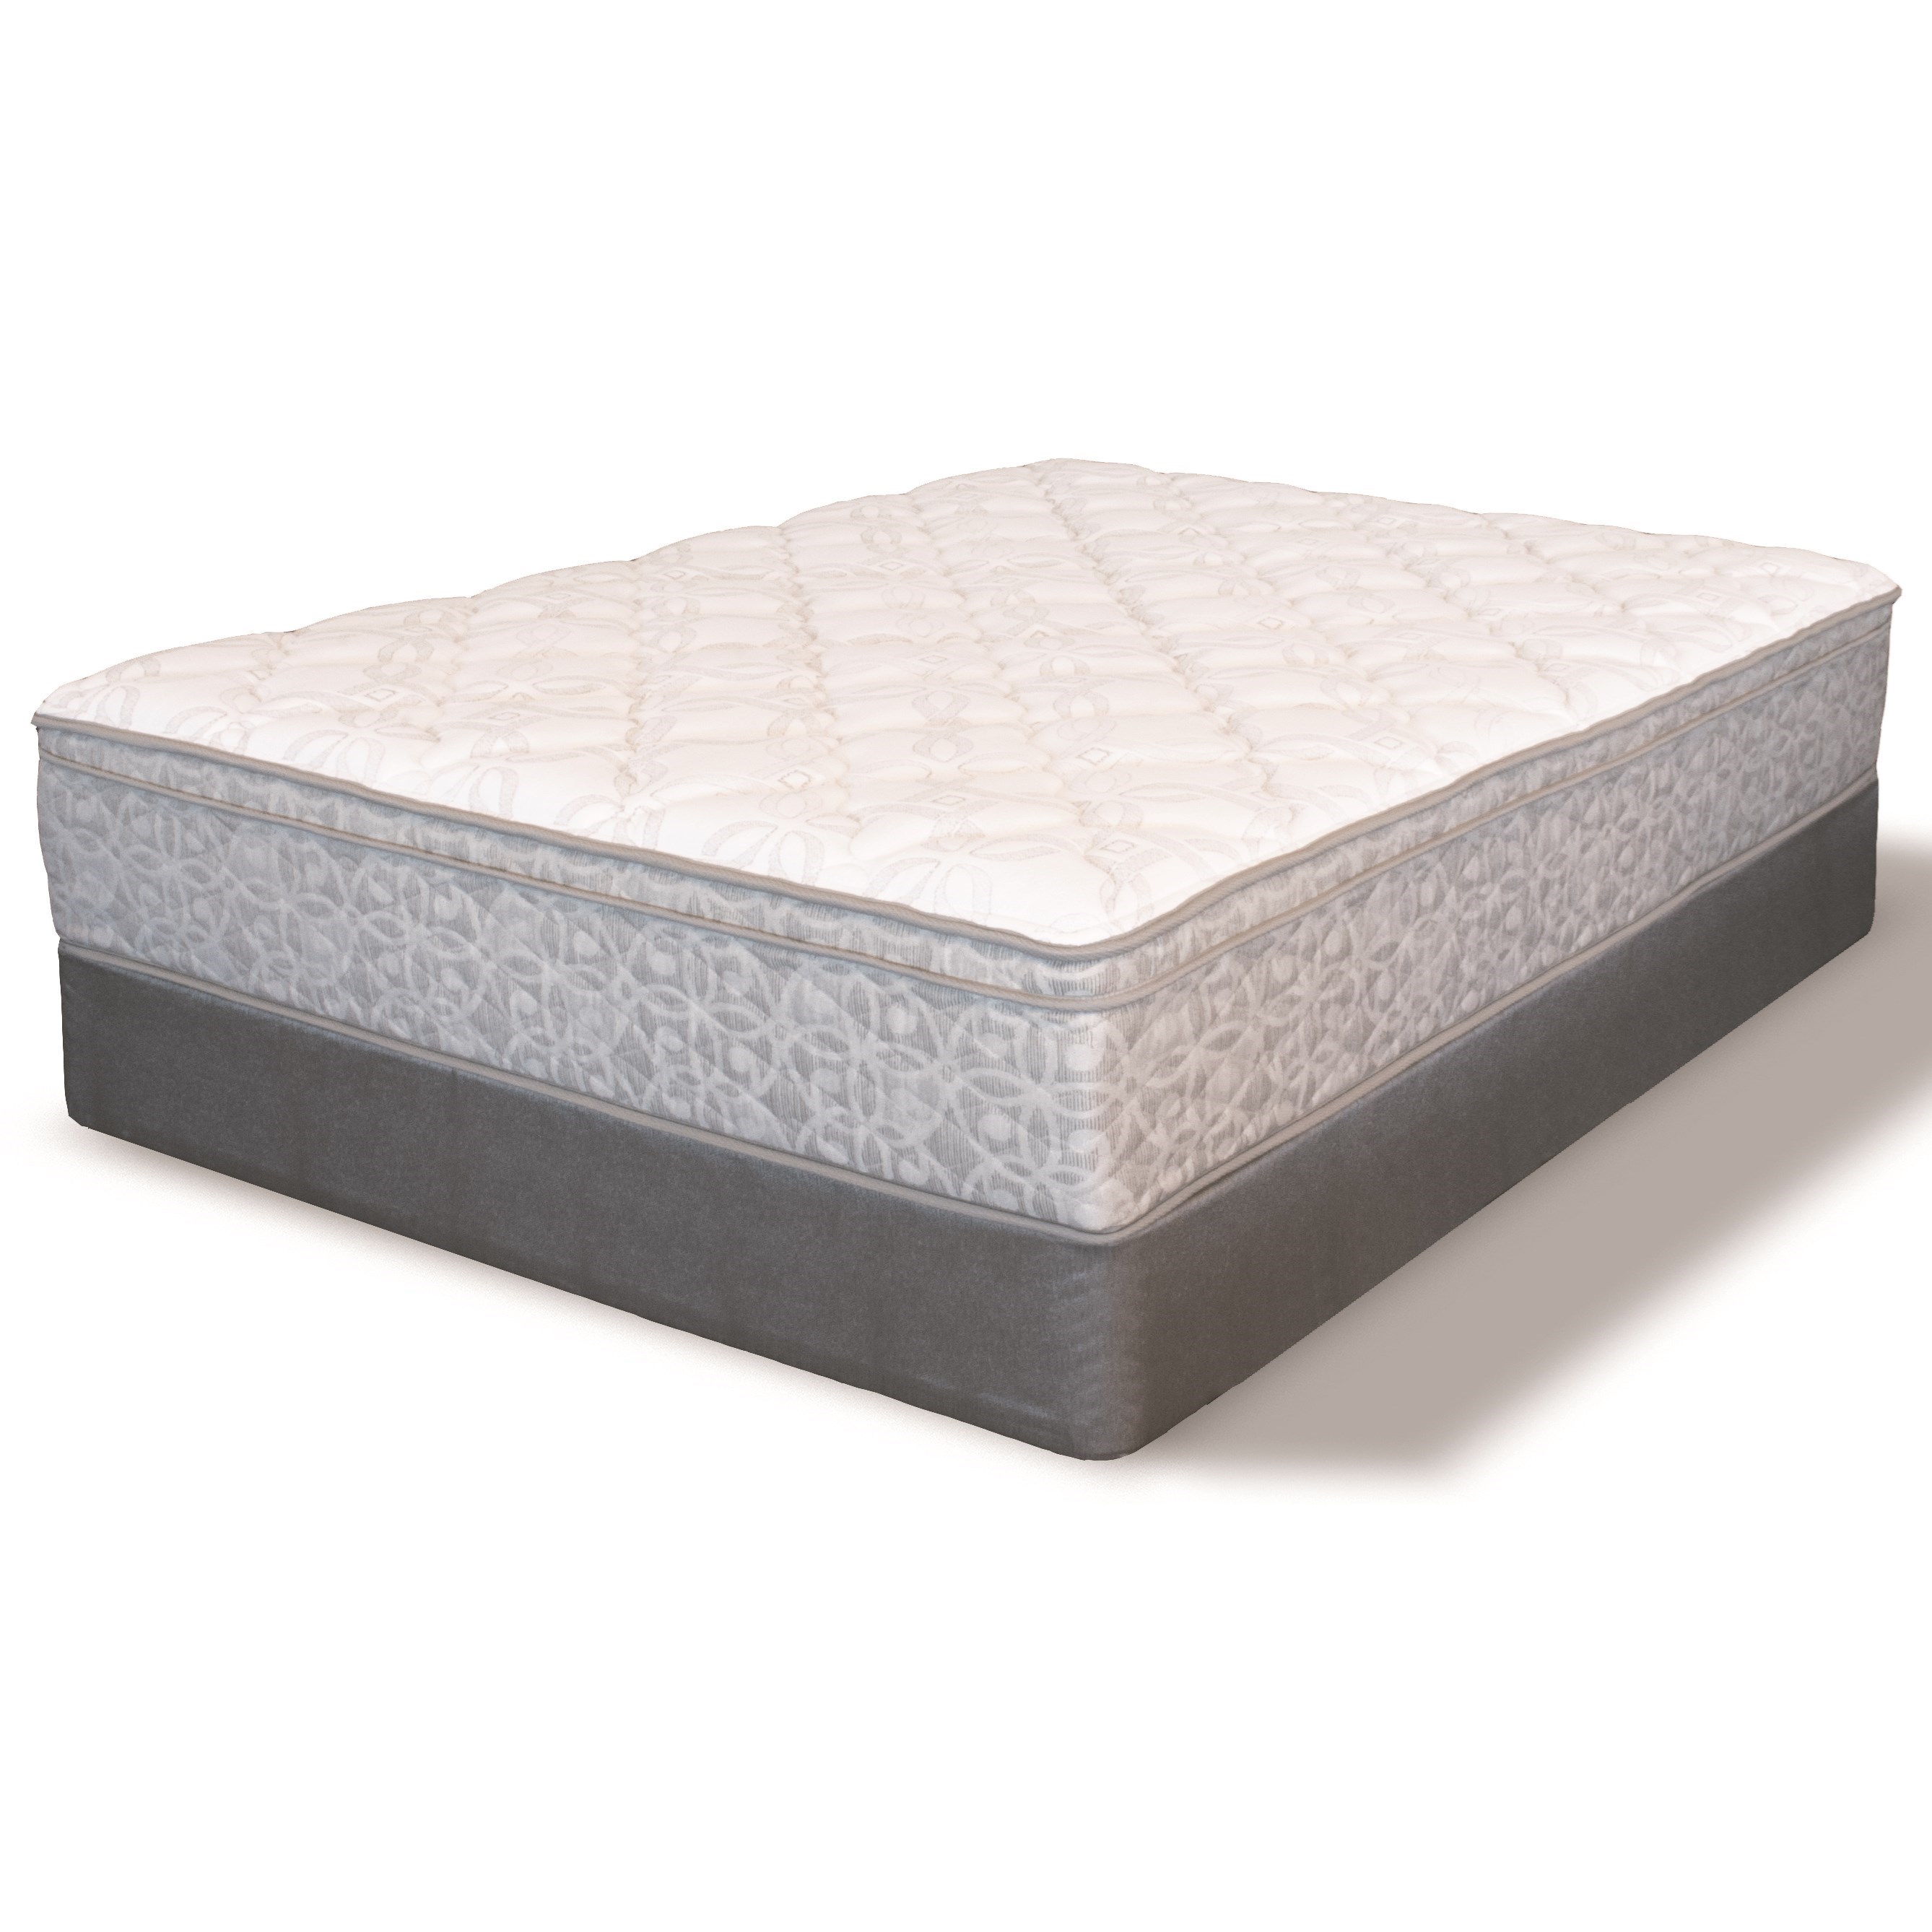 Low Profile Innerspring Mattress Serta Ms Heidleburg Euro Top Twin Euro Top Innerspring